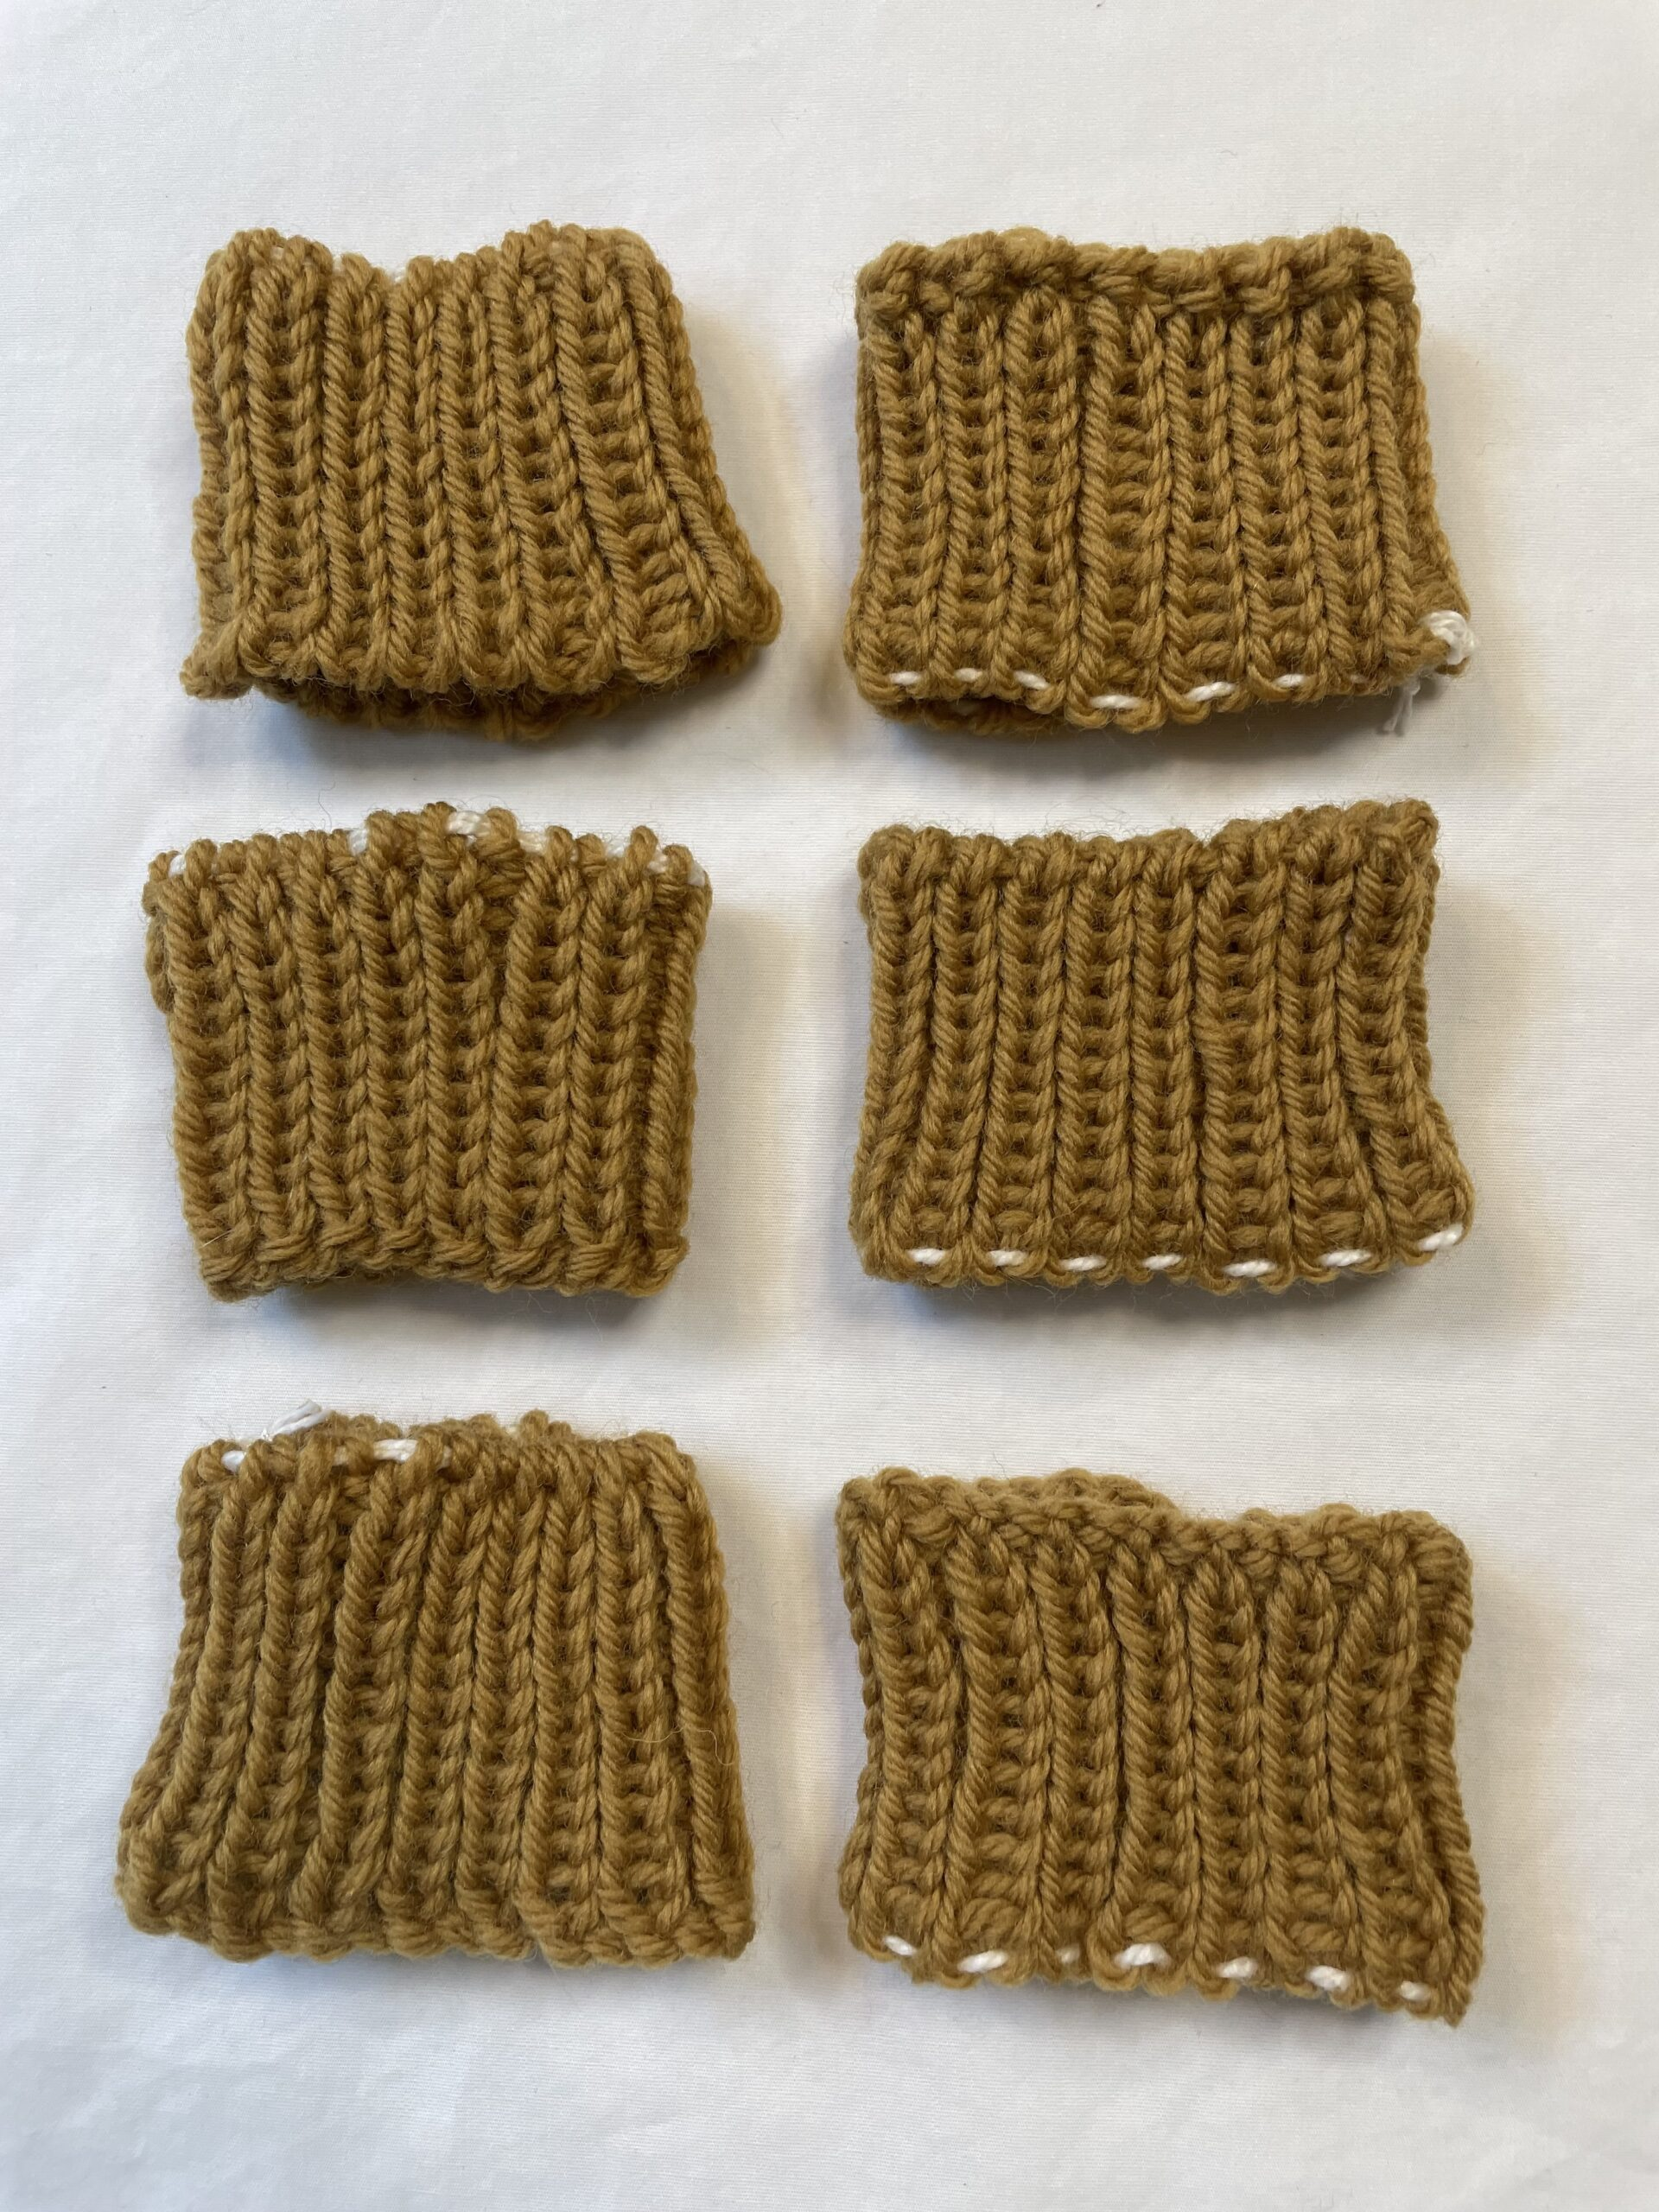 Flexible Cast-Ons and Bind-Offs